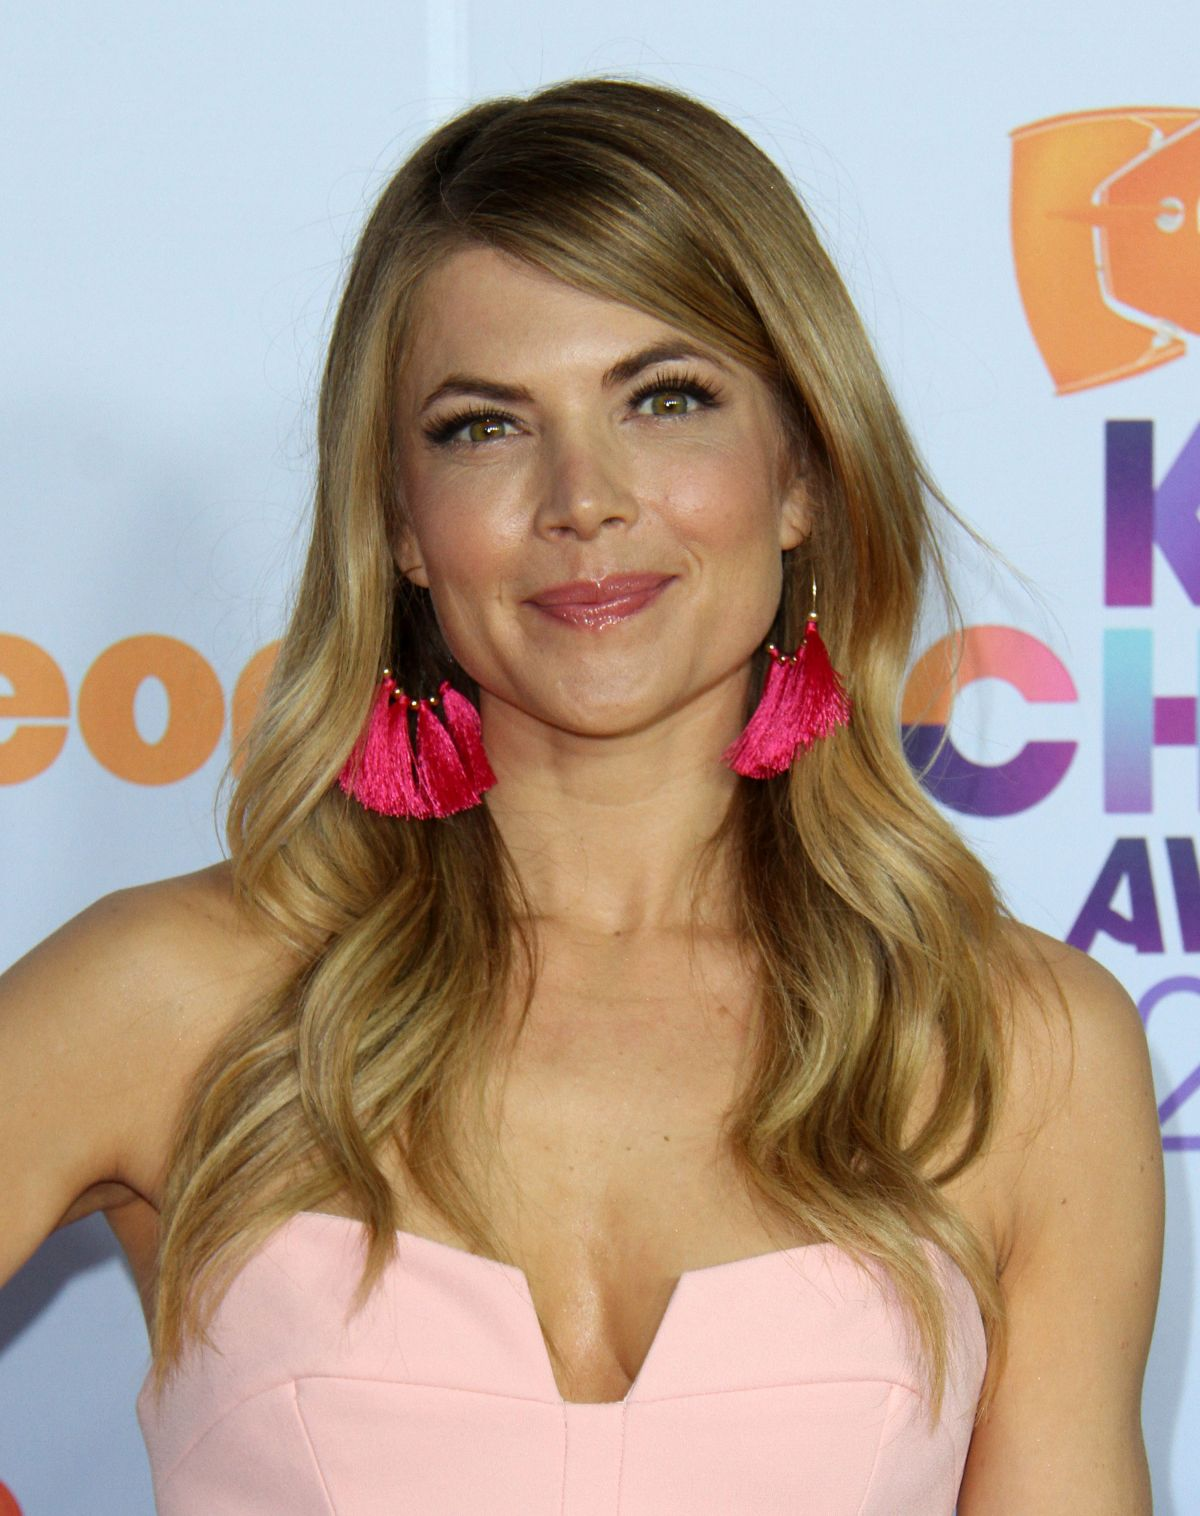 STEVIE NELSON at Nickelodeon 2017 Kids' Choice Awards in Los Angeles 03/11/2017